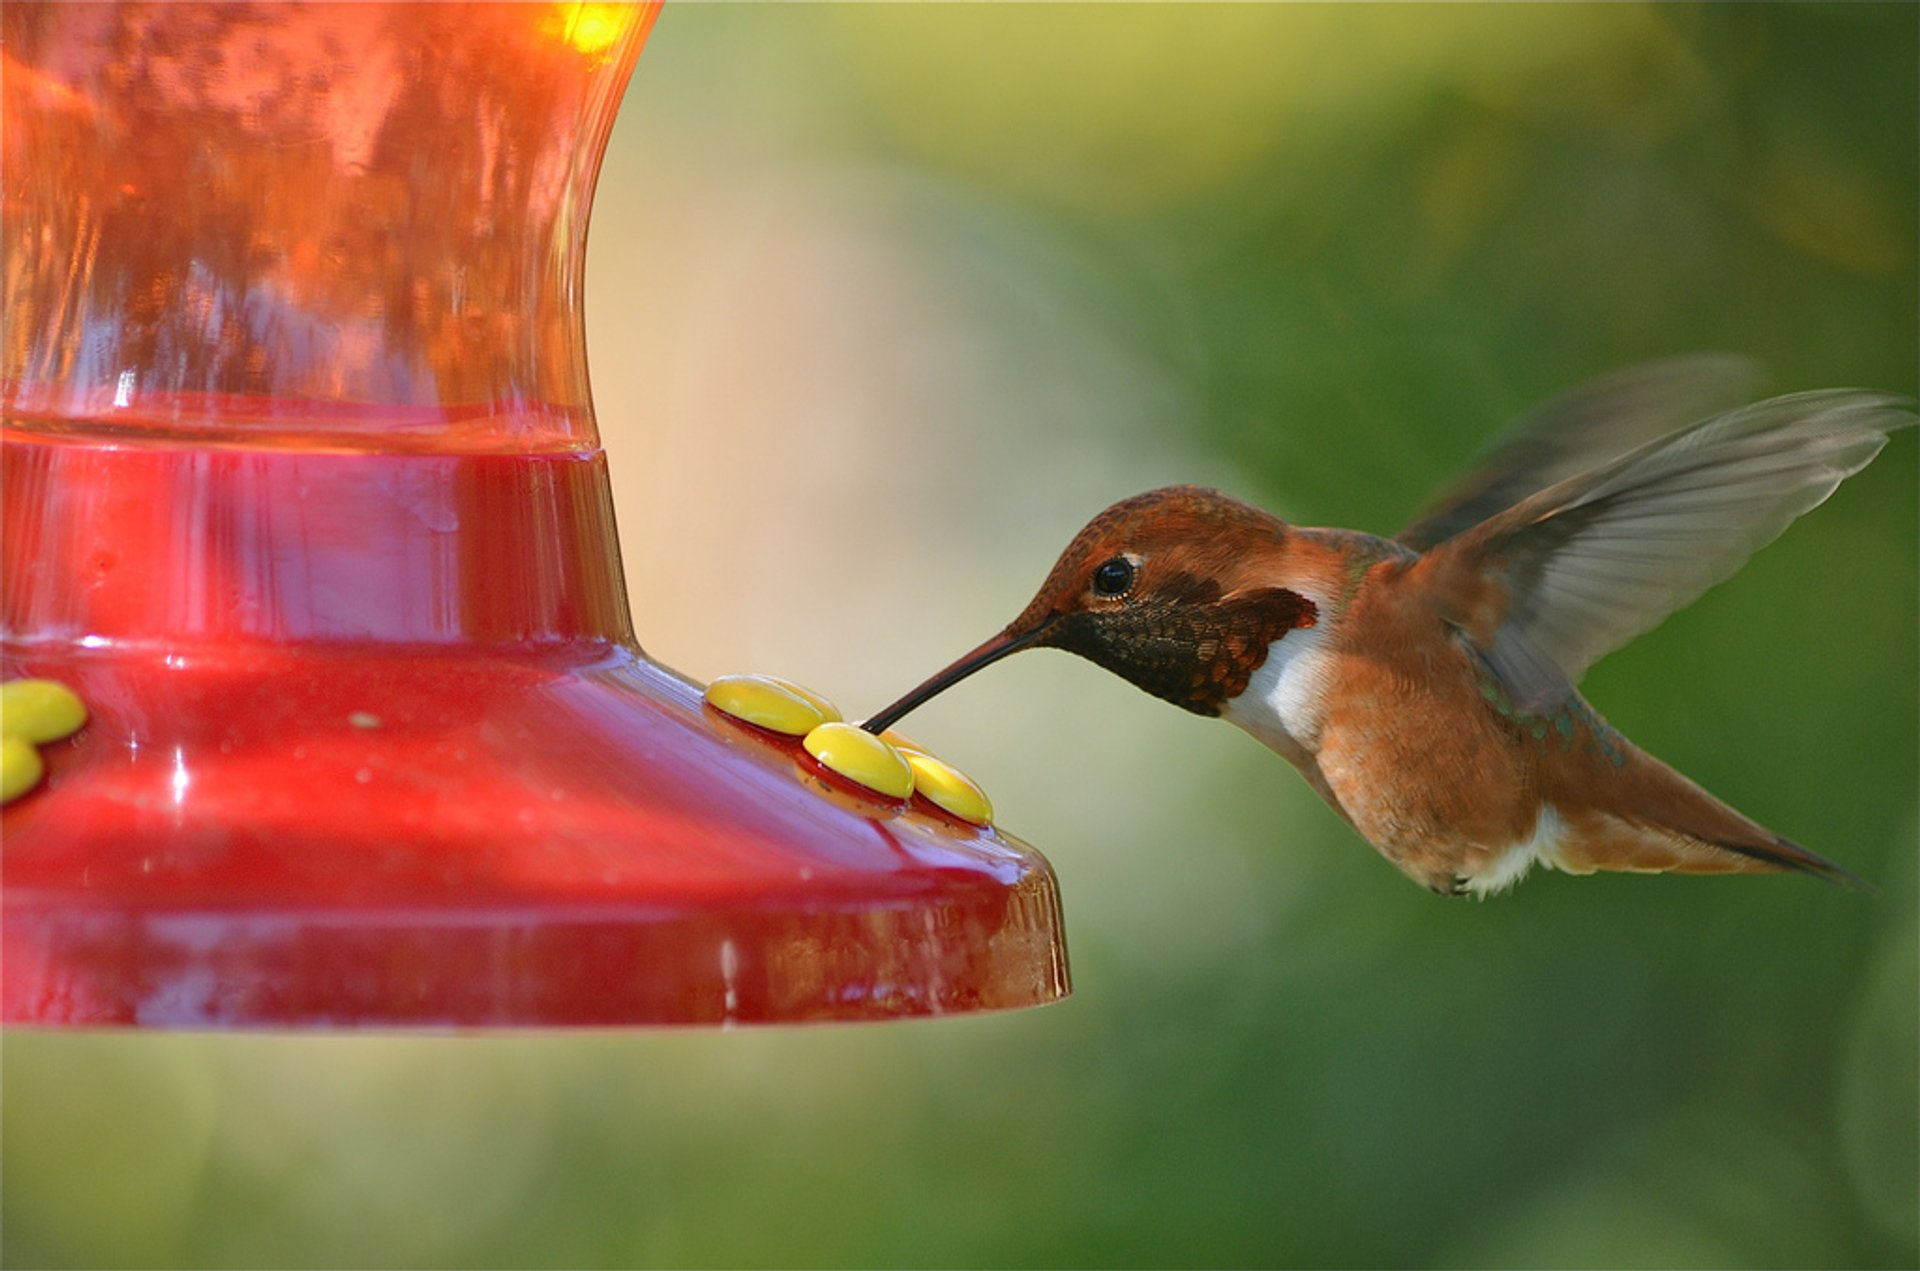 Rufous Hummingbird in North Hills, Los Angeles, CA 2019